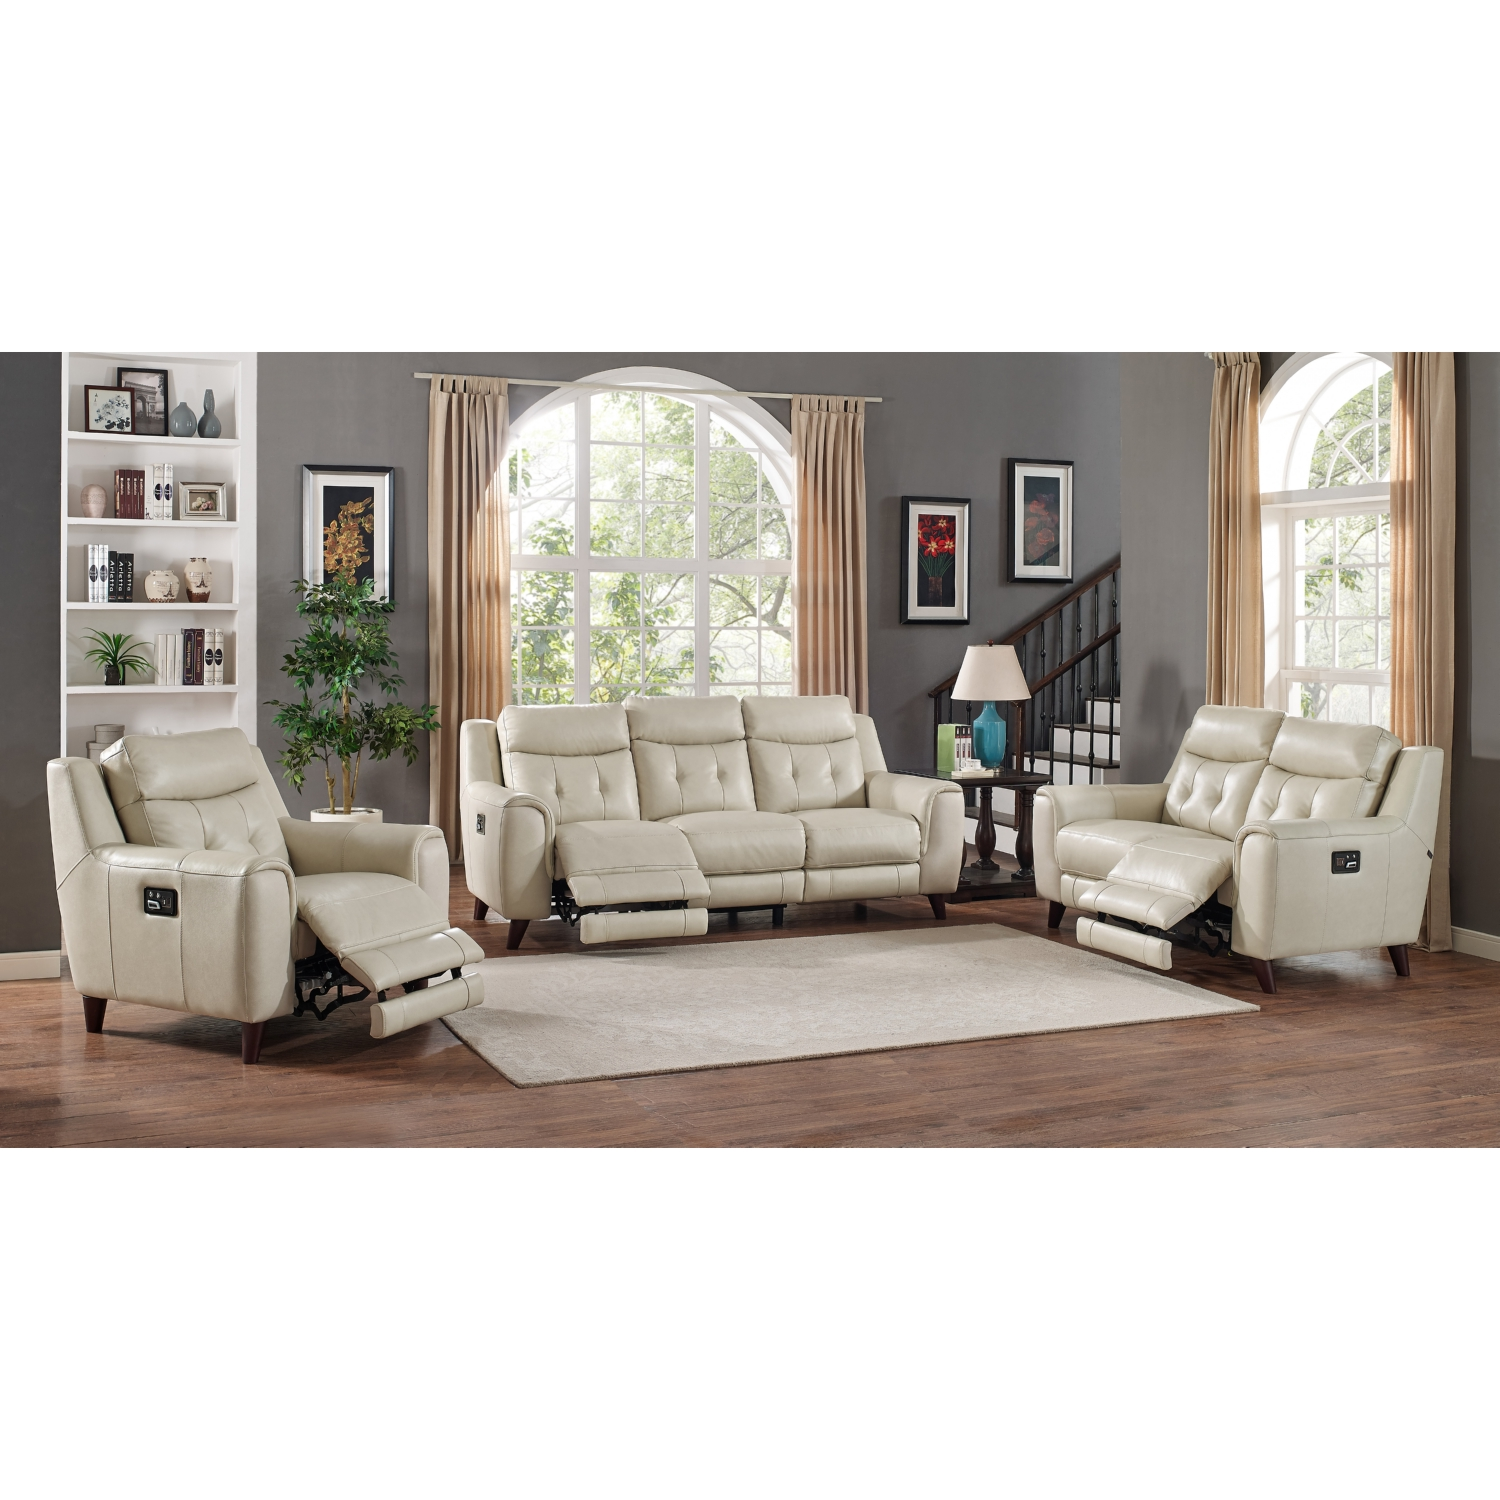 AMAX Leather Paramount 3 Piece Leather Set; Power Reclining, Headrest, U0026  Lumbar Sofa, Loveseat, U0026 Chair In Cream